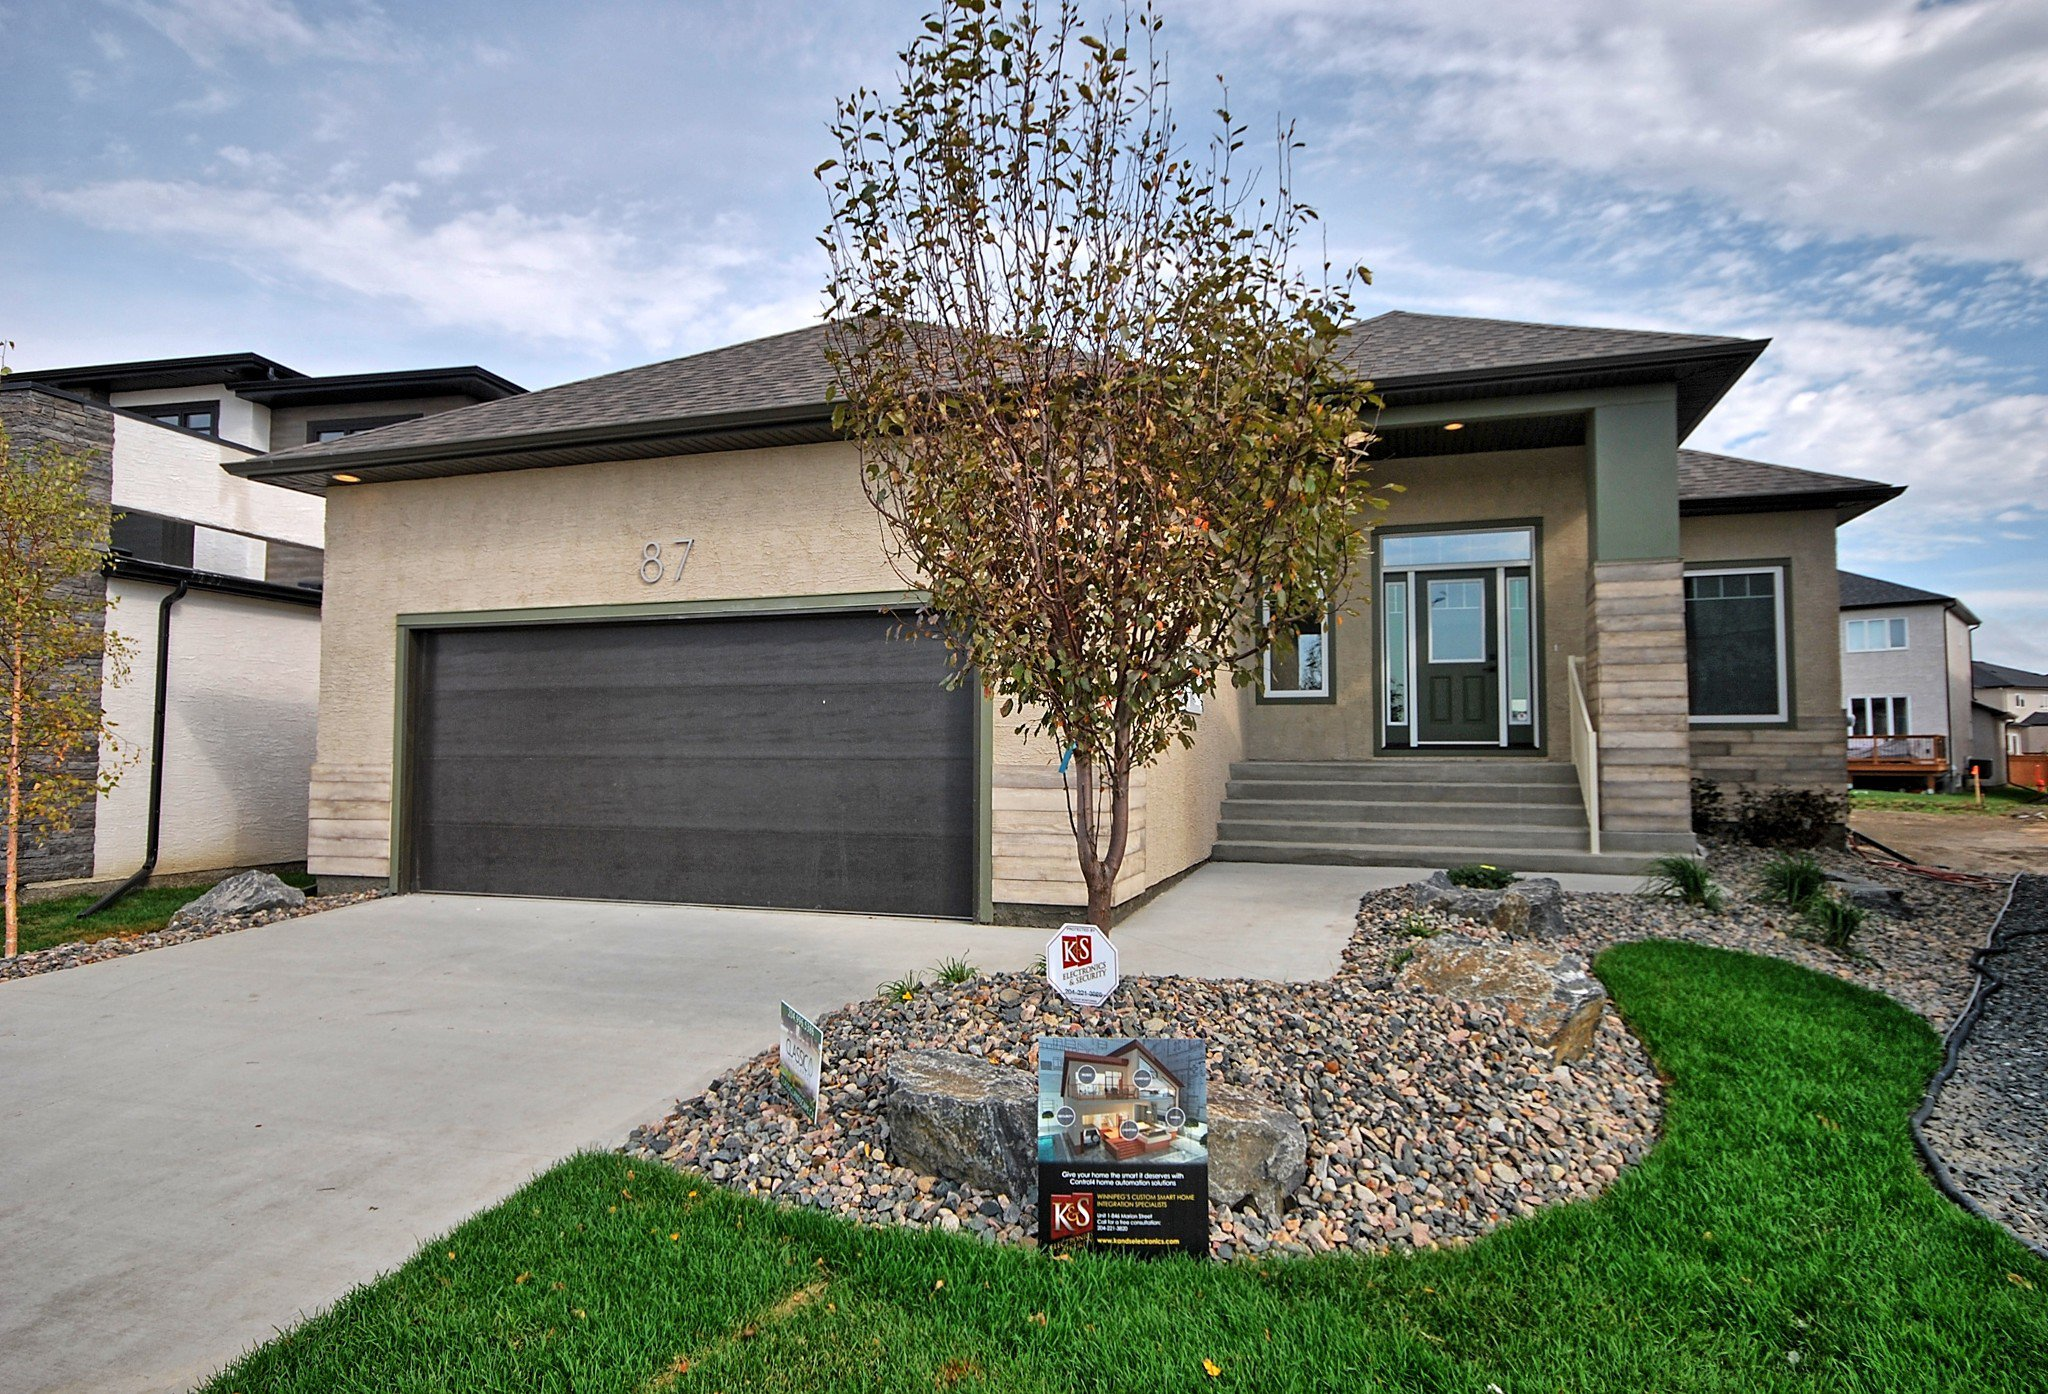 Main Photo: 87 Eaglewood Drive in Winnipeg: Bridgwater Trails Single Family Detached for sale (1R)